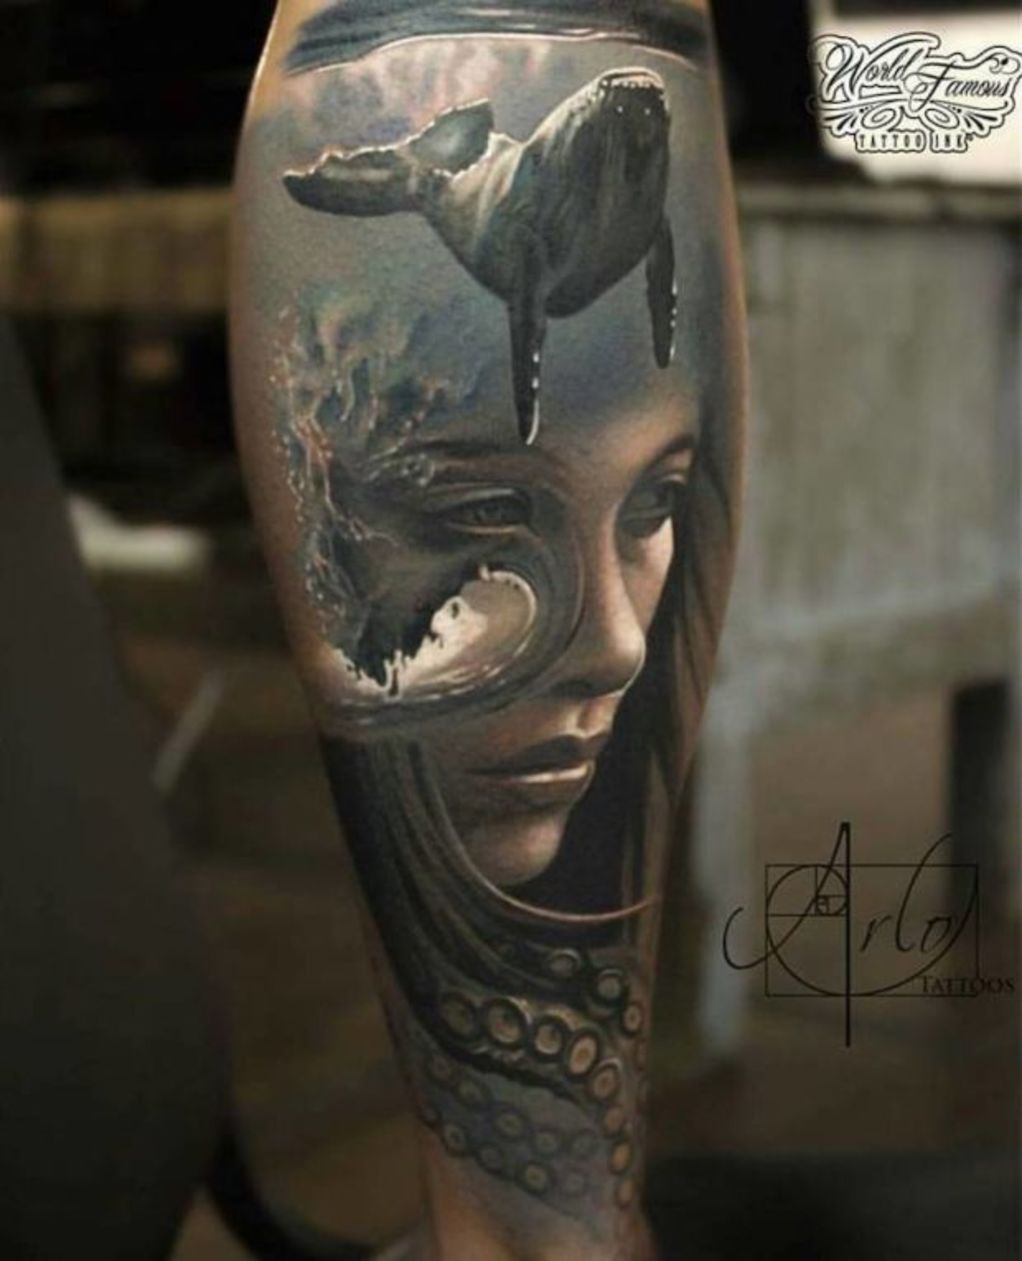 16e38ed7a This Artist's Hyper Realistic Tattoos Will Make You Want To Get Inked  Immediately | UltraLinx